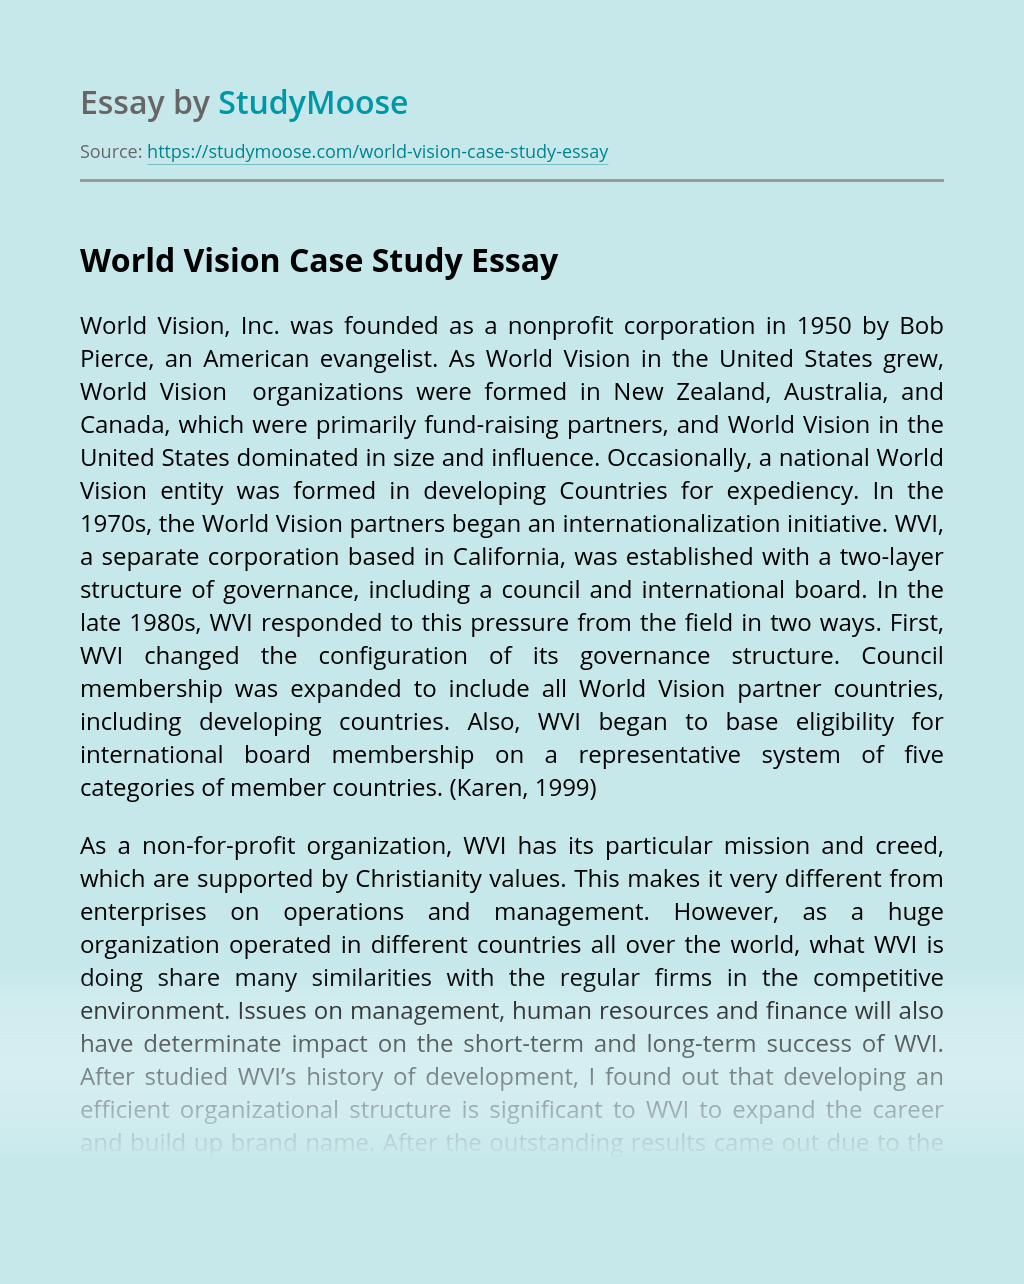 World Vision Case Study